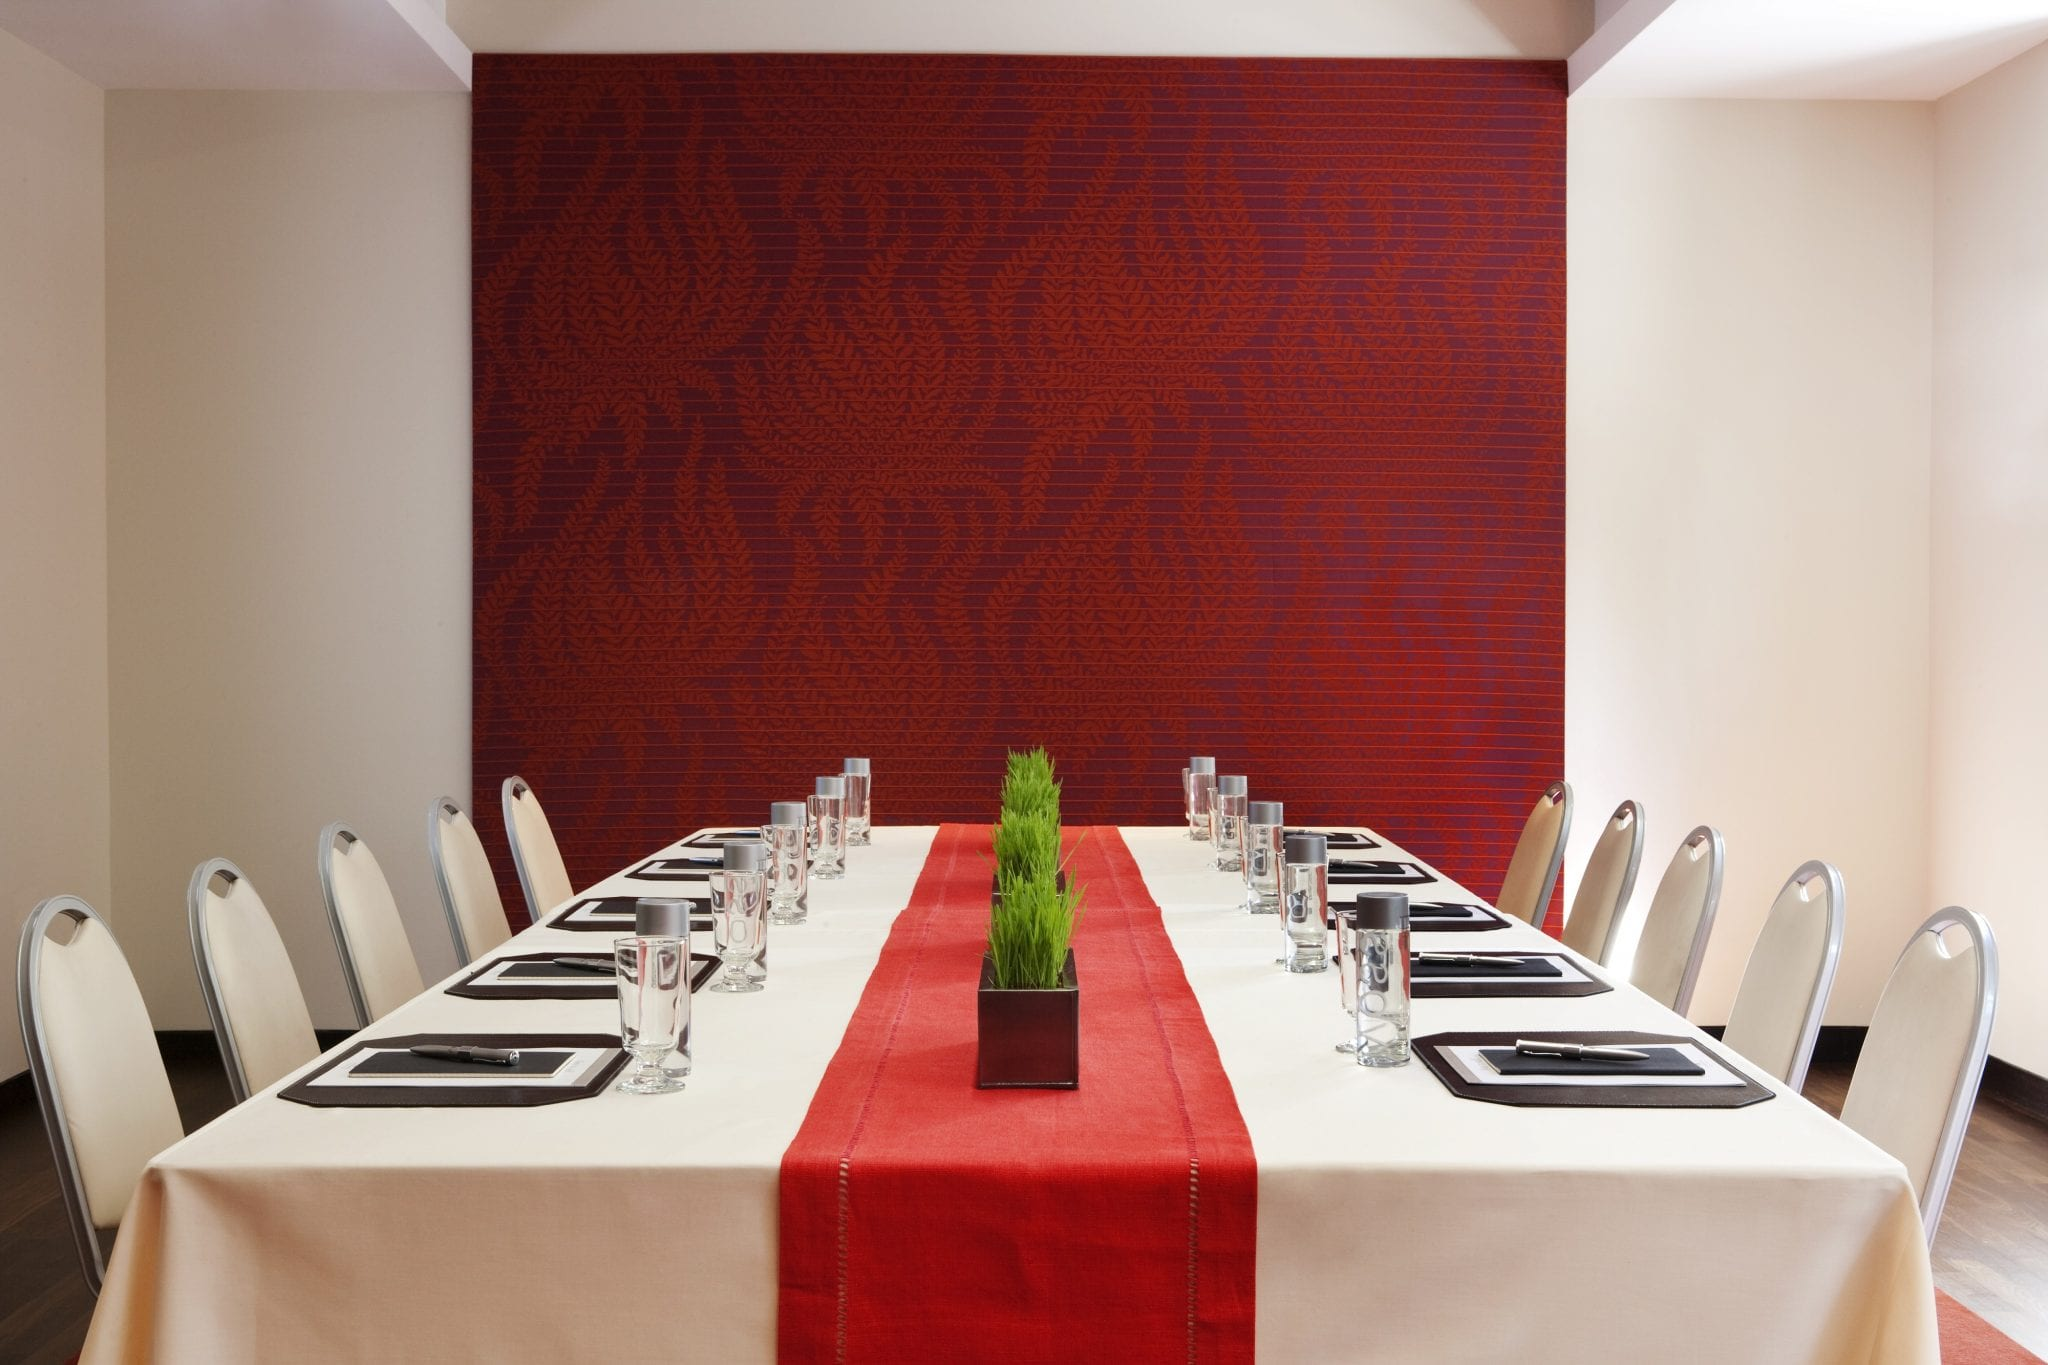 View from the head of a meeting table for ten people. A red table runner is placed atop the white table cloth, with small square planters placed down the middle.